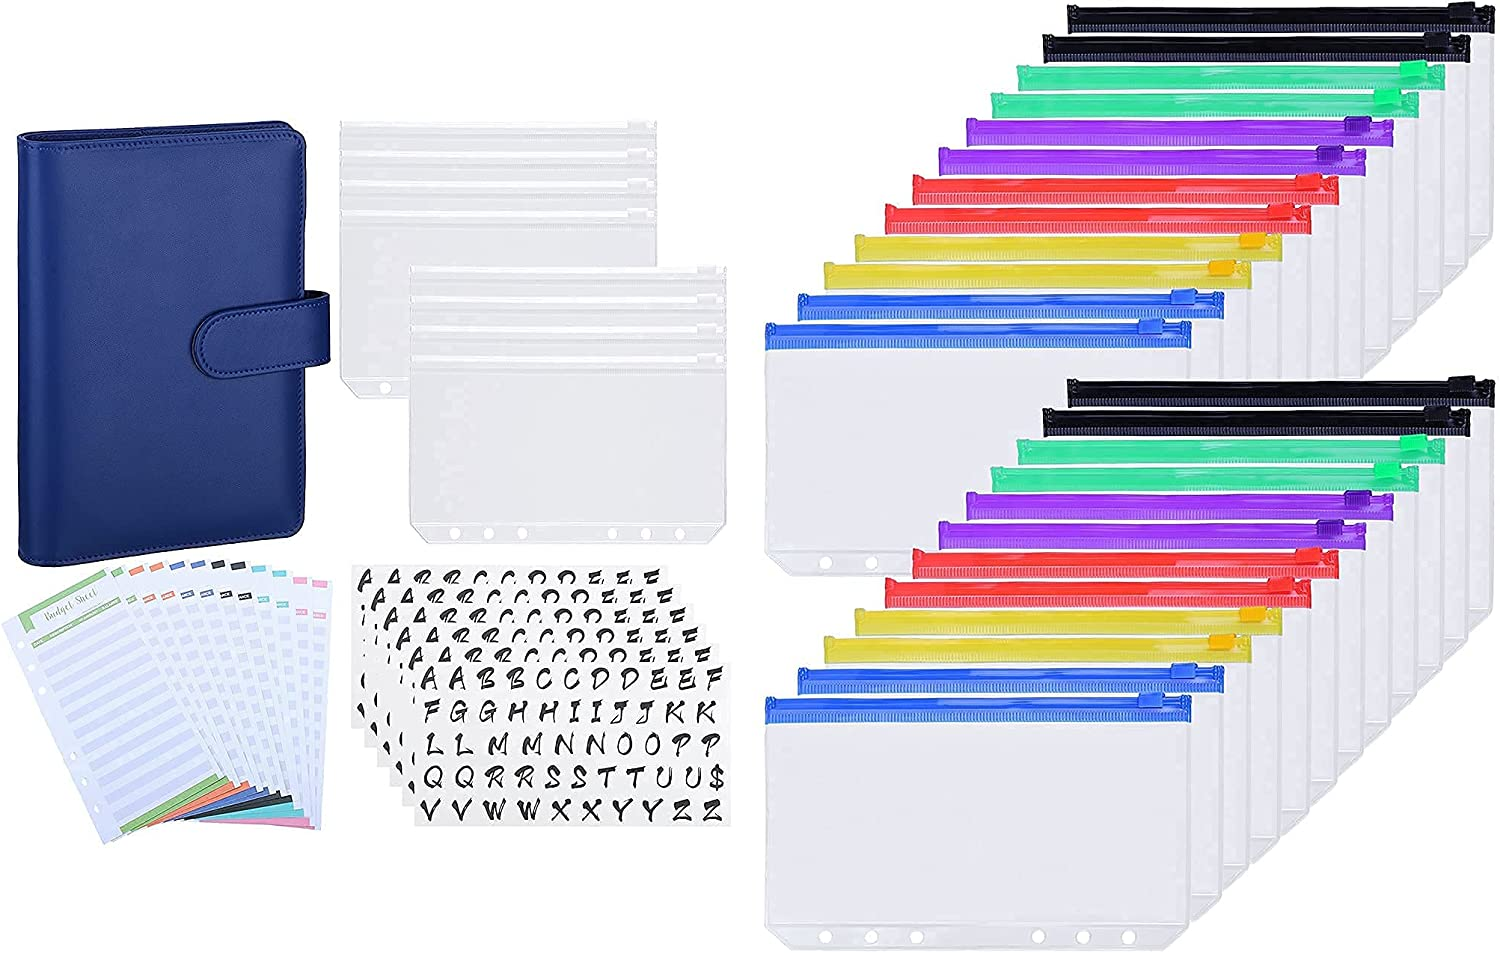 Ndsox A6 Budget Binder System Blue Max 42% OFF Multicolour Max 74% OFF Navy and 24pcs